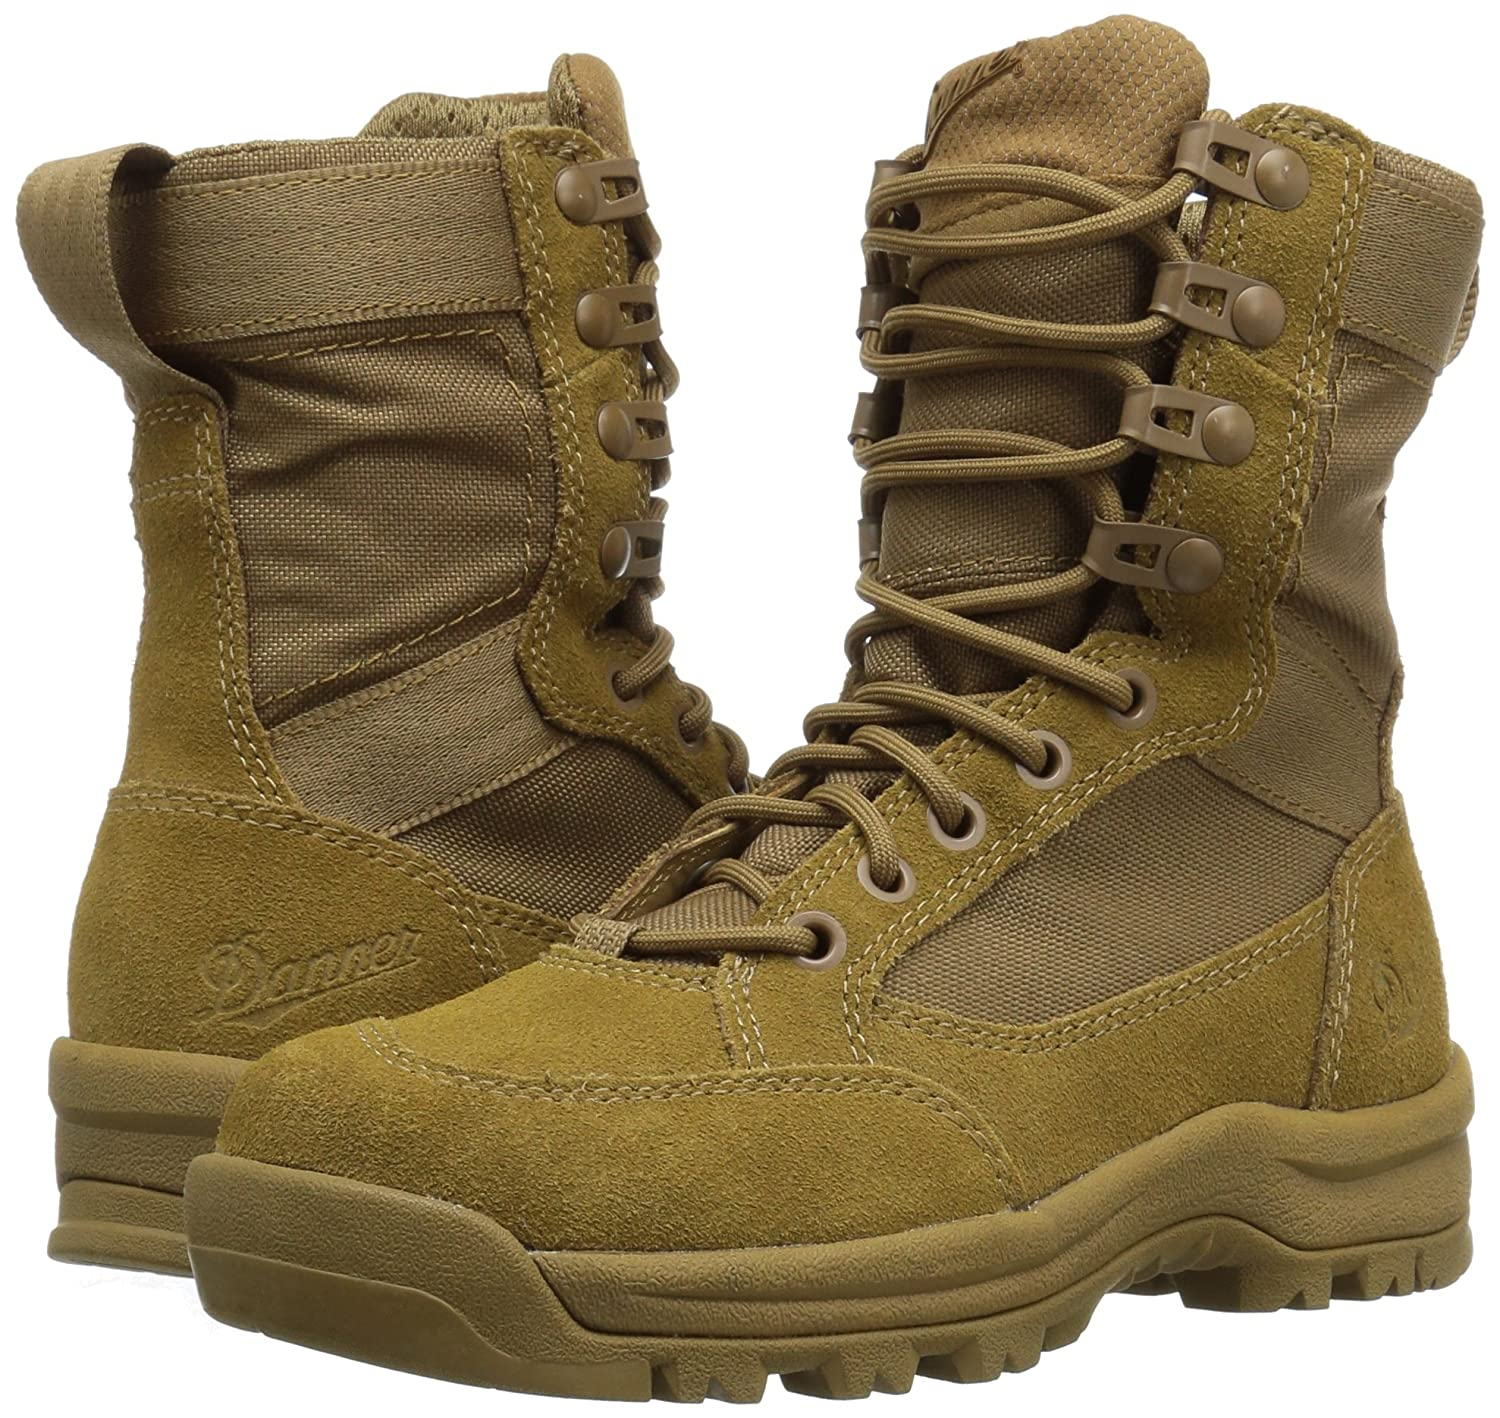 Men's Coyote Danner Tanicus Boots Review – Tactical Footwear Men's Coyote Danner Tanicus Boots Review – Tactical Footwear new pics